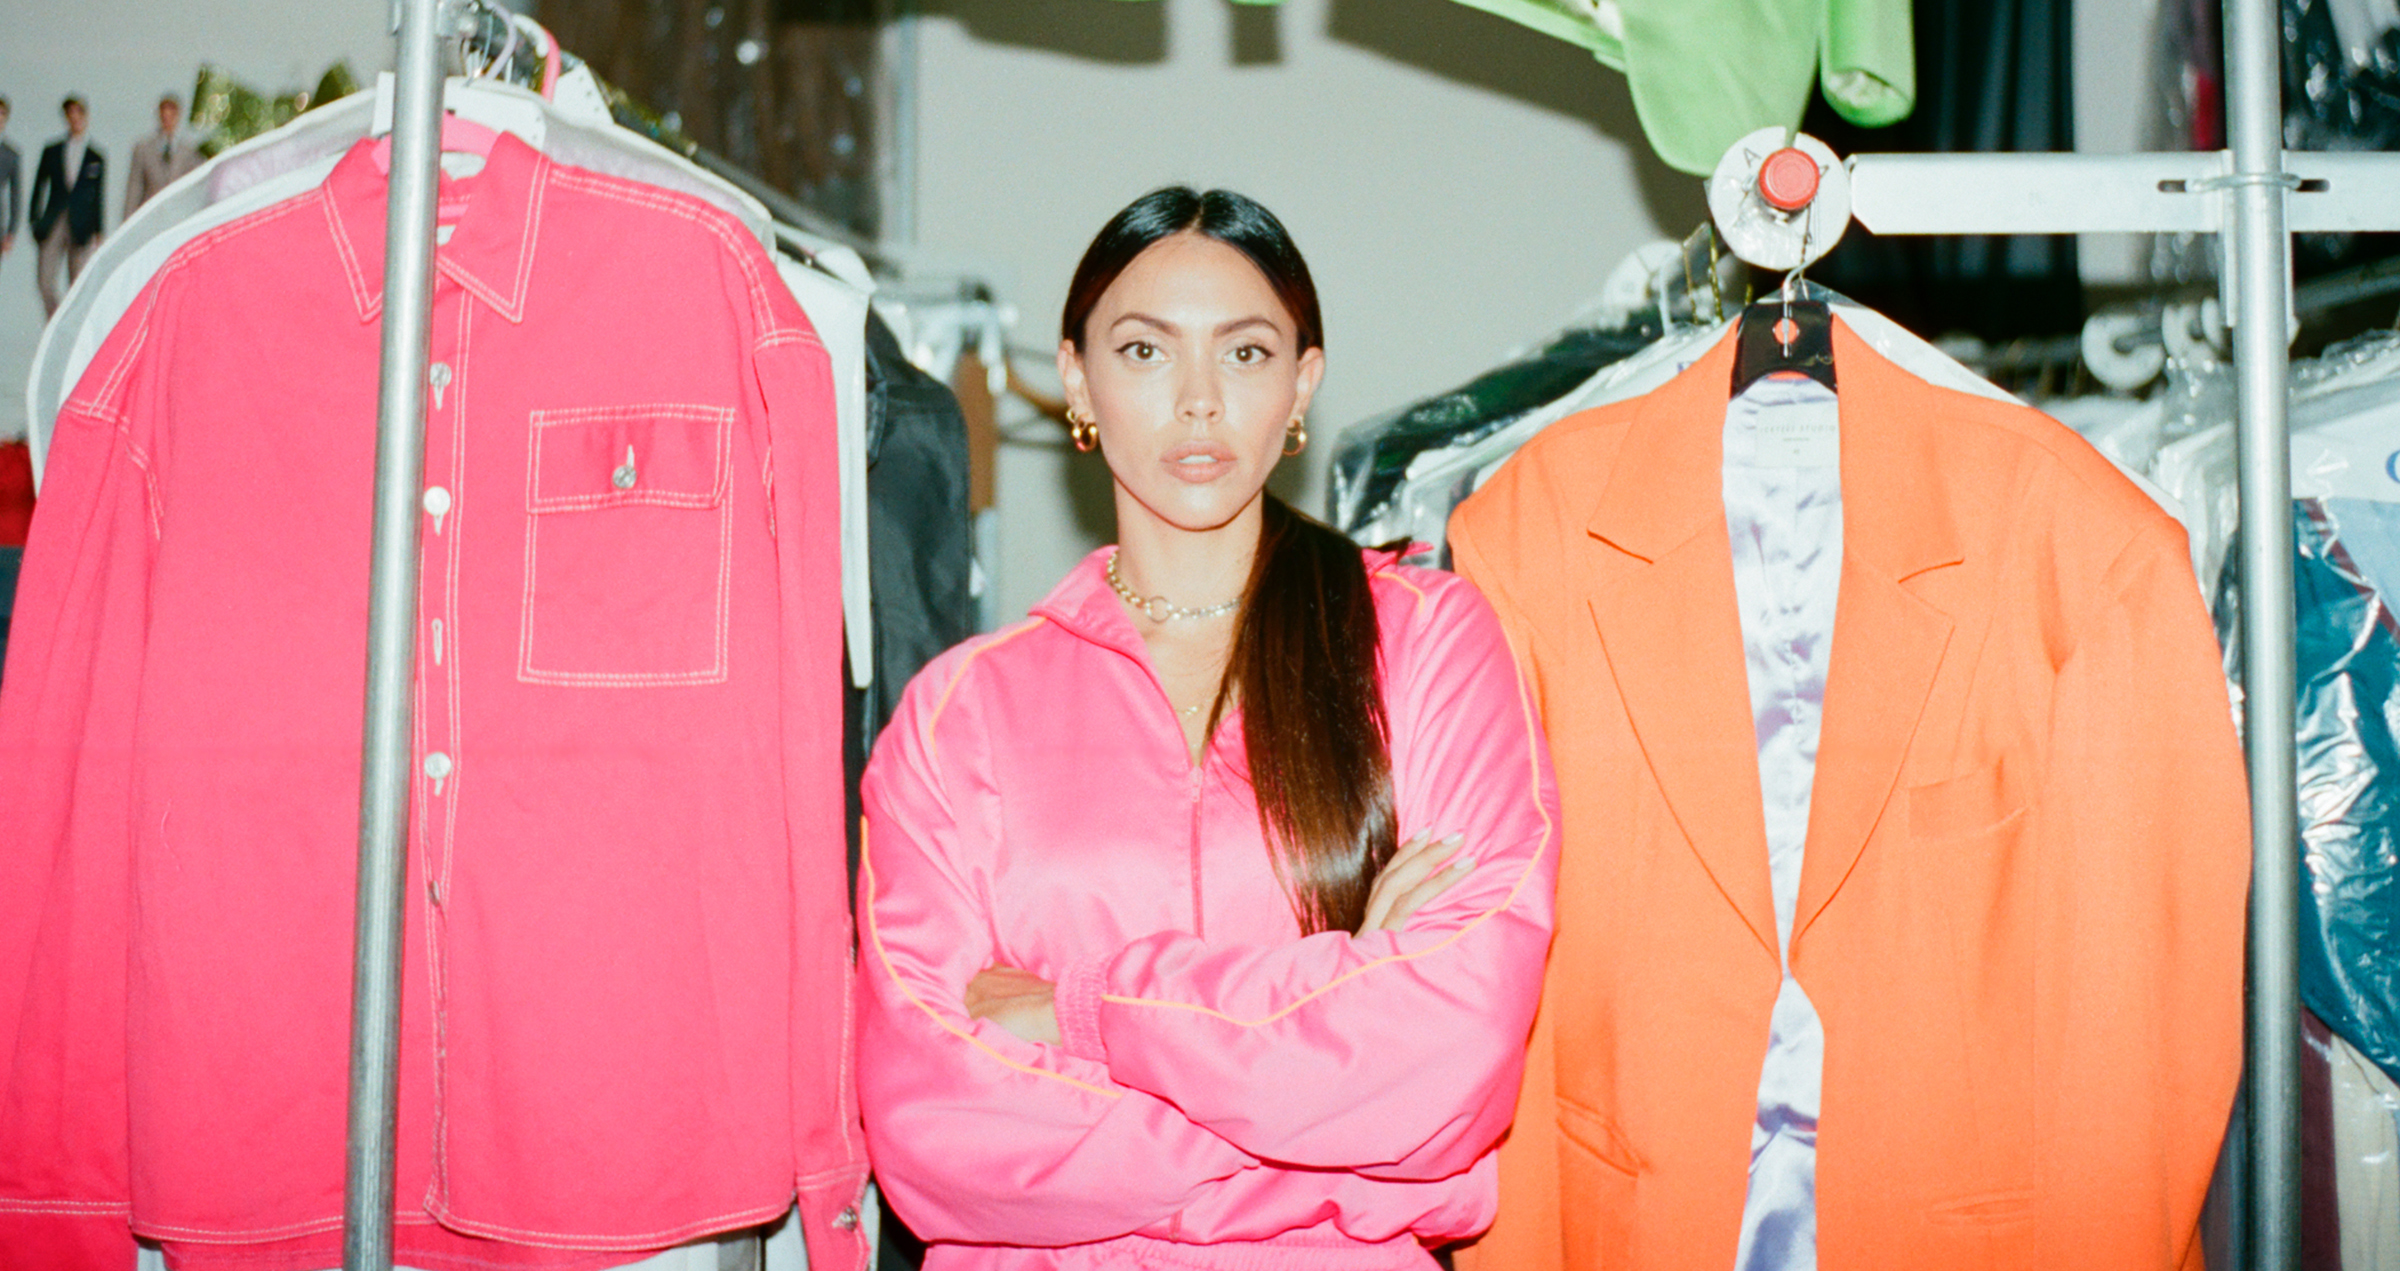 Bolivian Fashion Designer Fera Schmidt Talks Design And Creating Her Nike Sneaker